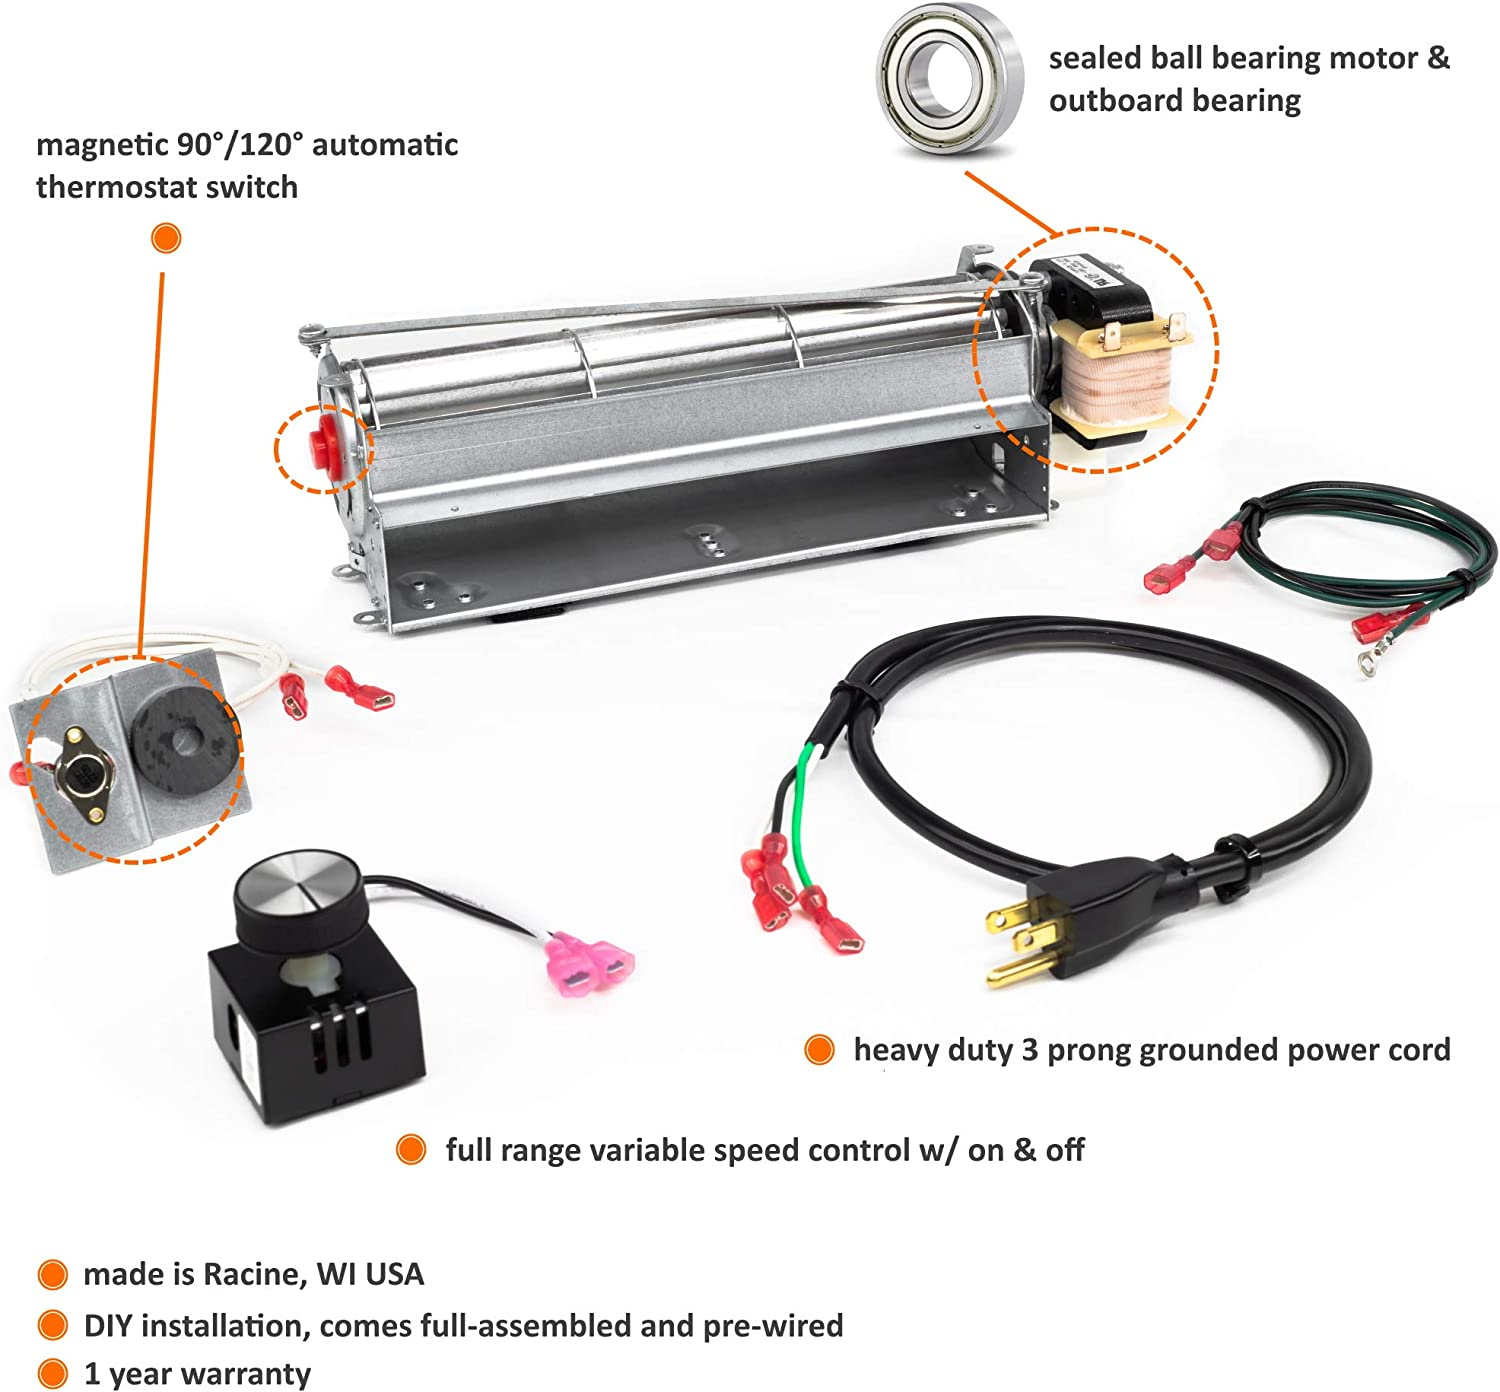 wiring diagram for wood stove blower amazon com fireplaceblowersonline gfk4 gfk4a fk4 fireplace blower  gfk4 gfk4a fk4 fireplace blower